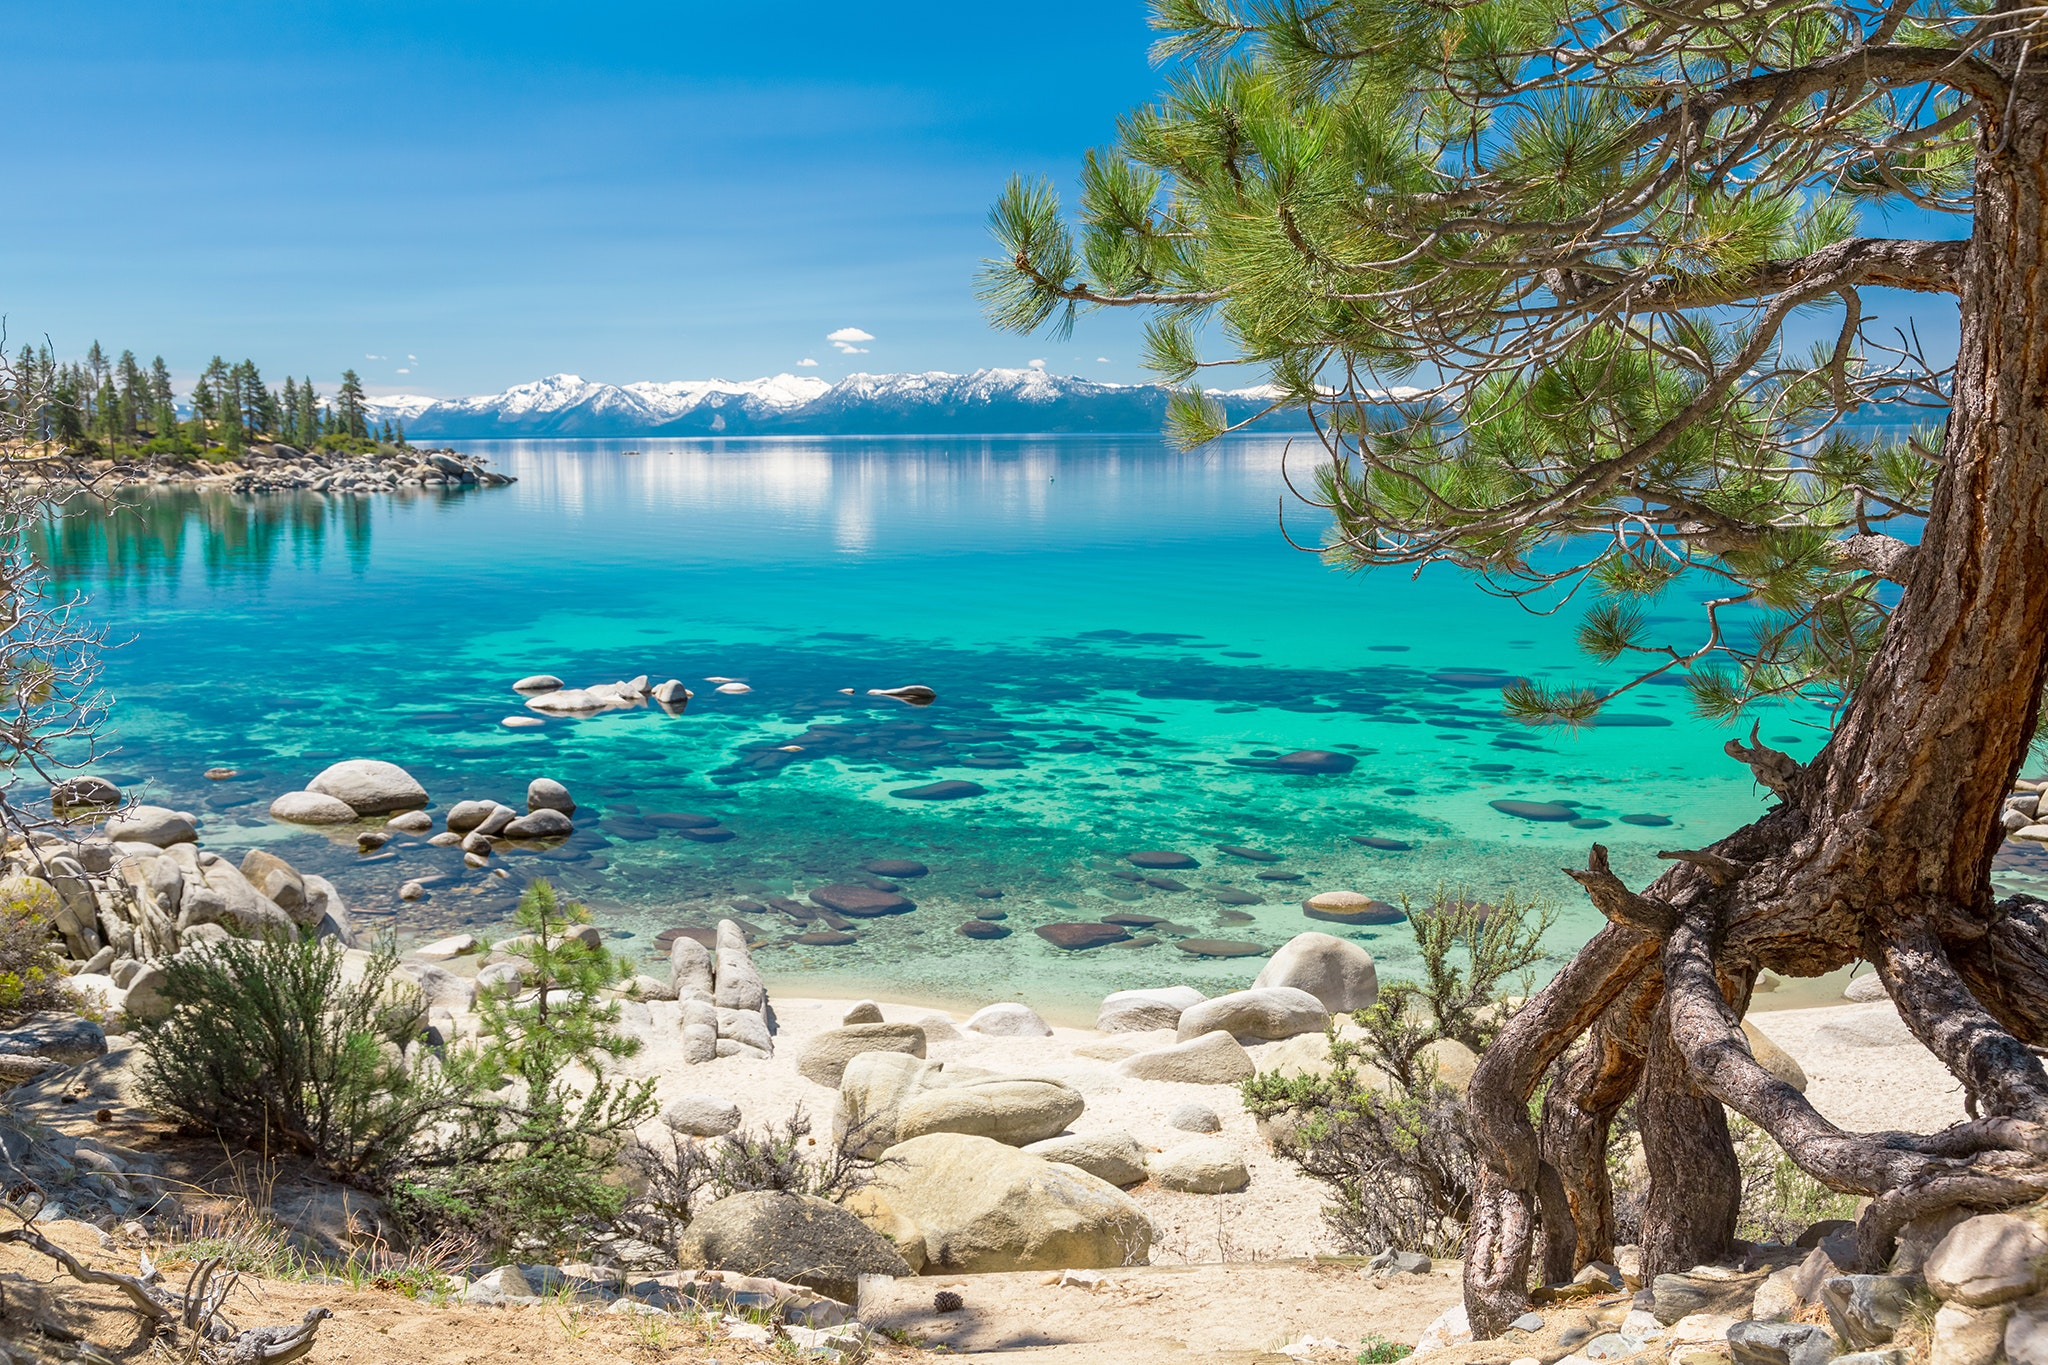 8 Great Lakeside Beaches in the U.S.